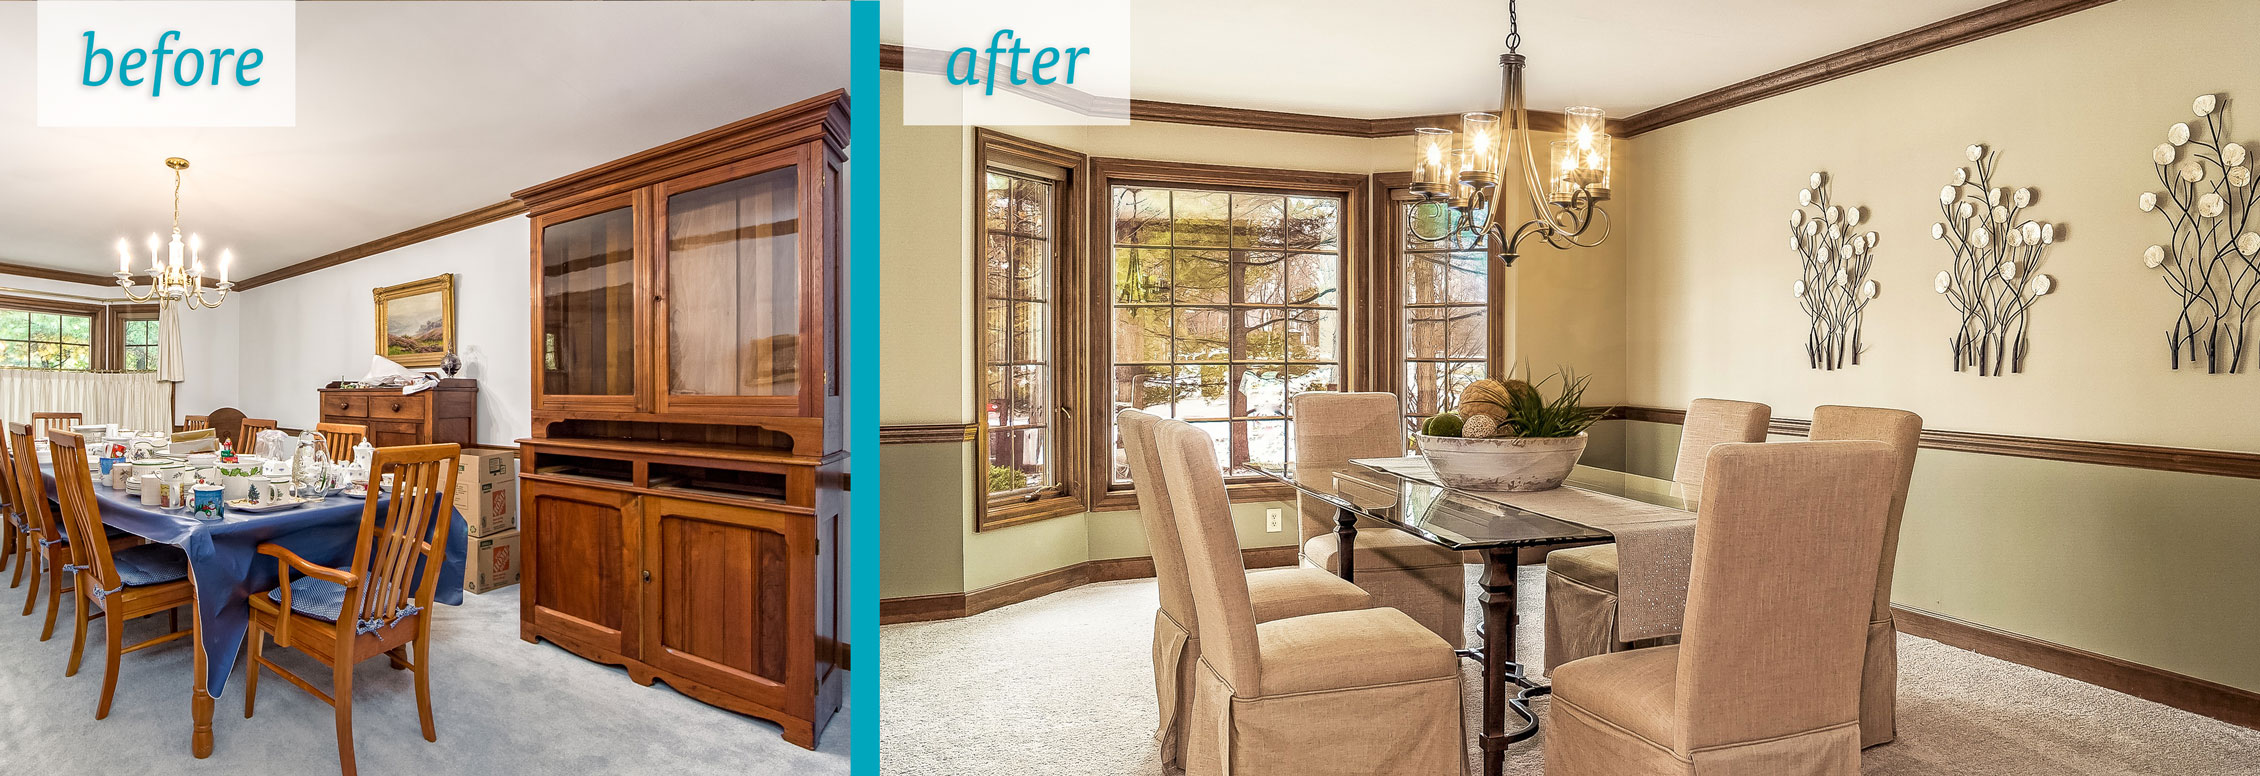 before-after-3-dining.jpg